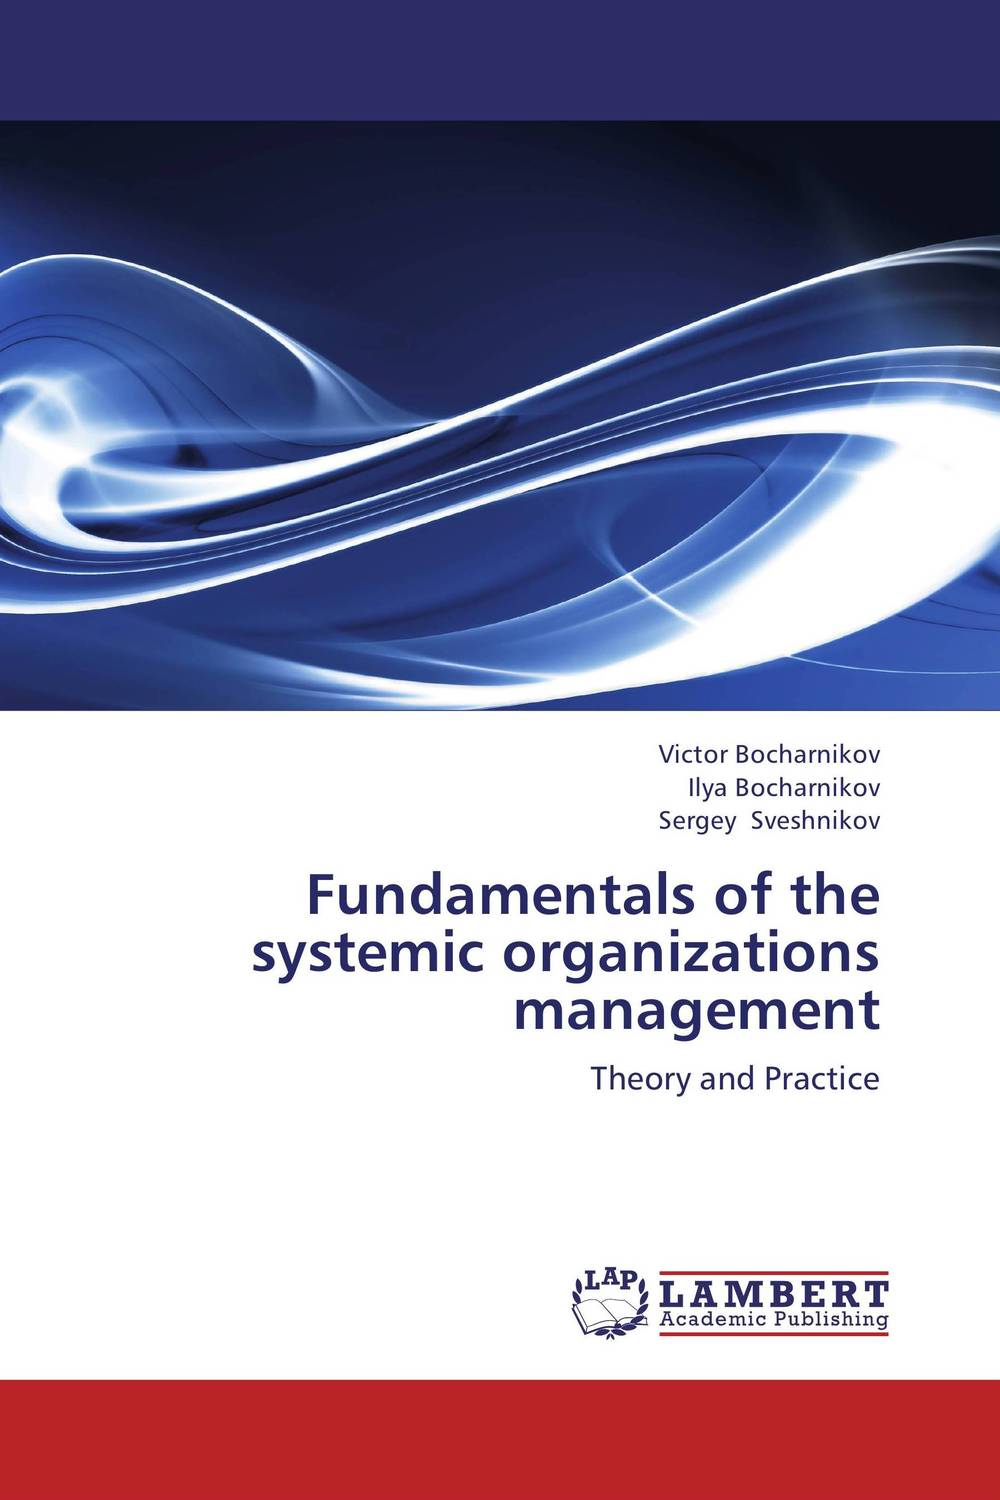 Fundamentals of the systemic organizations management maybelline тушь для бровей brow precise fiber filler 7 6 мл 3 оттенка 06 темно коричневый 7 6 мл